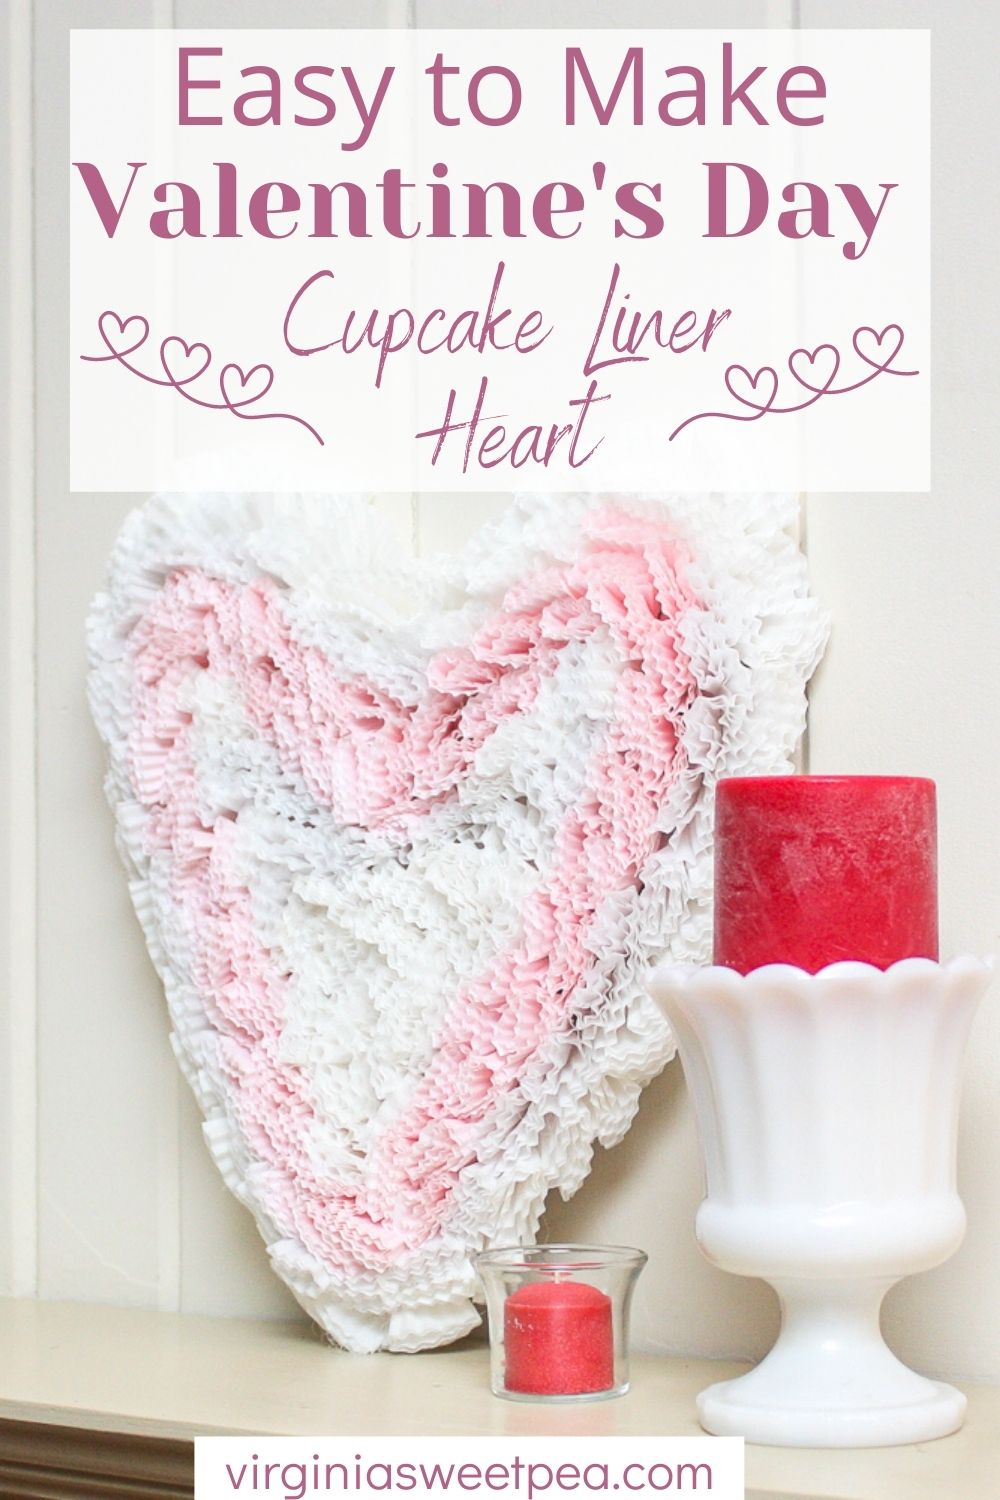 Heart cut from cardboard and decorated with pink and white cupcake liners